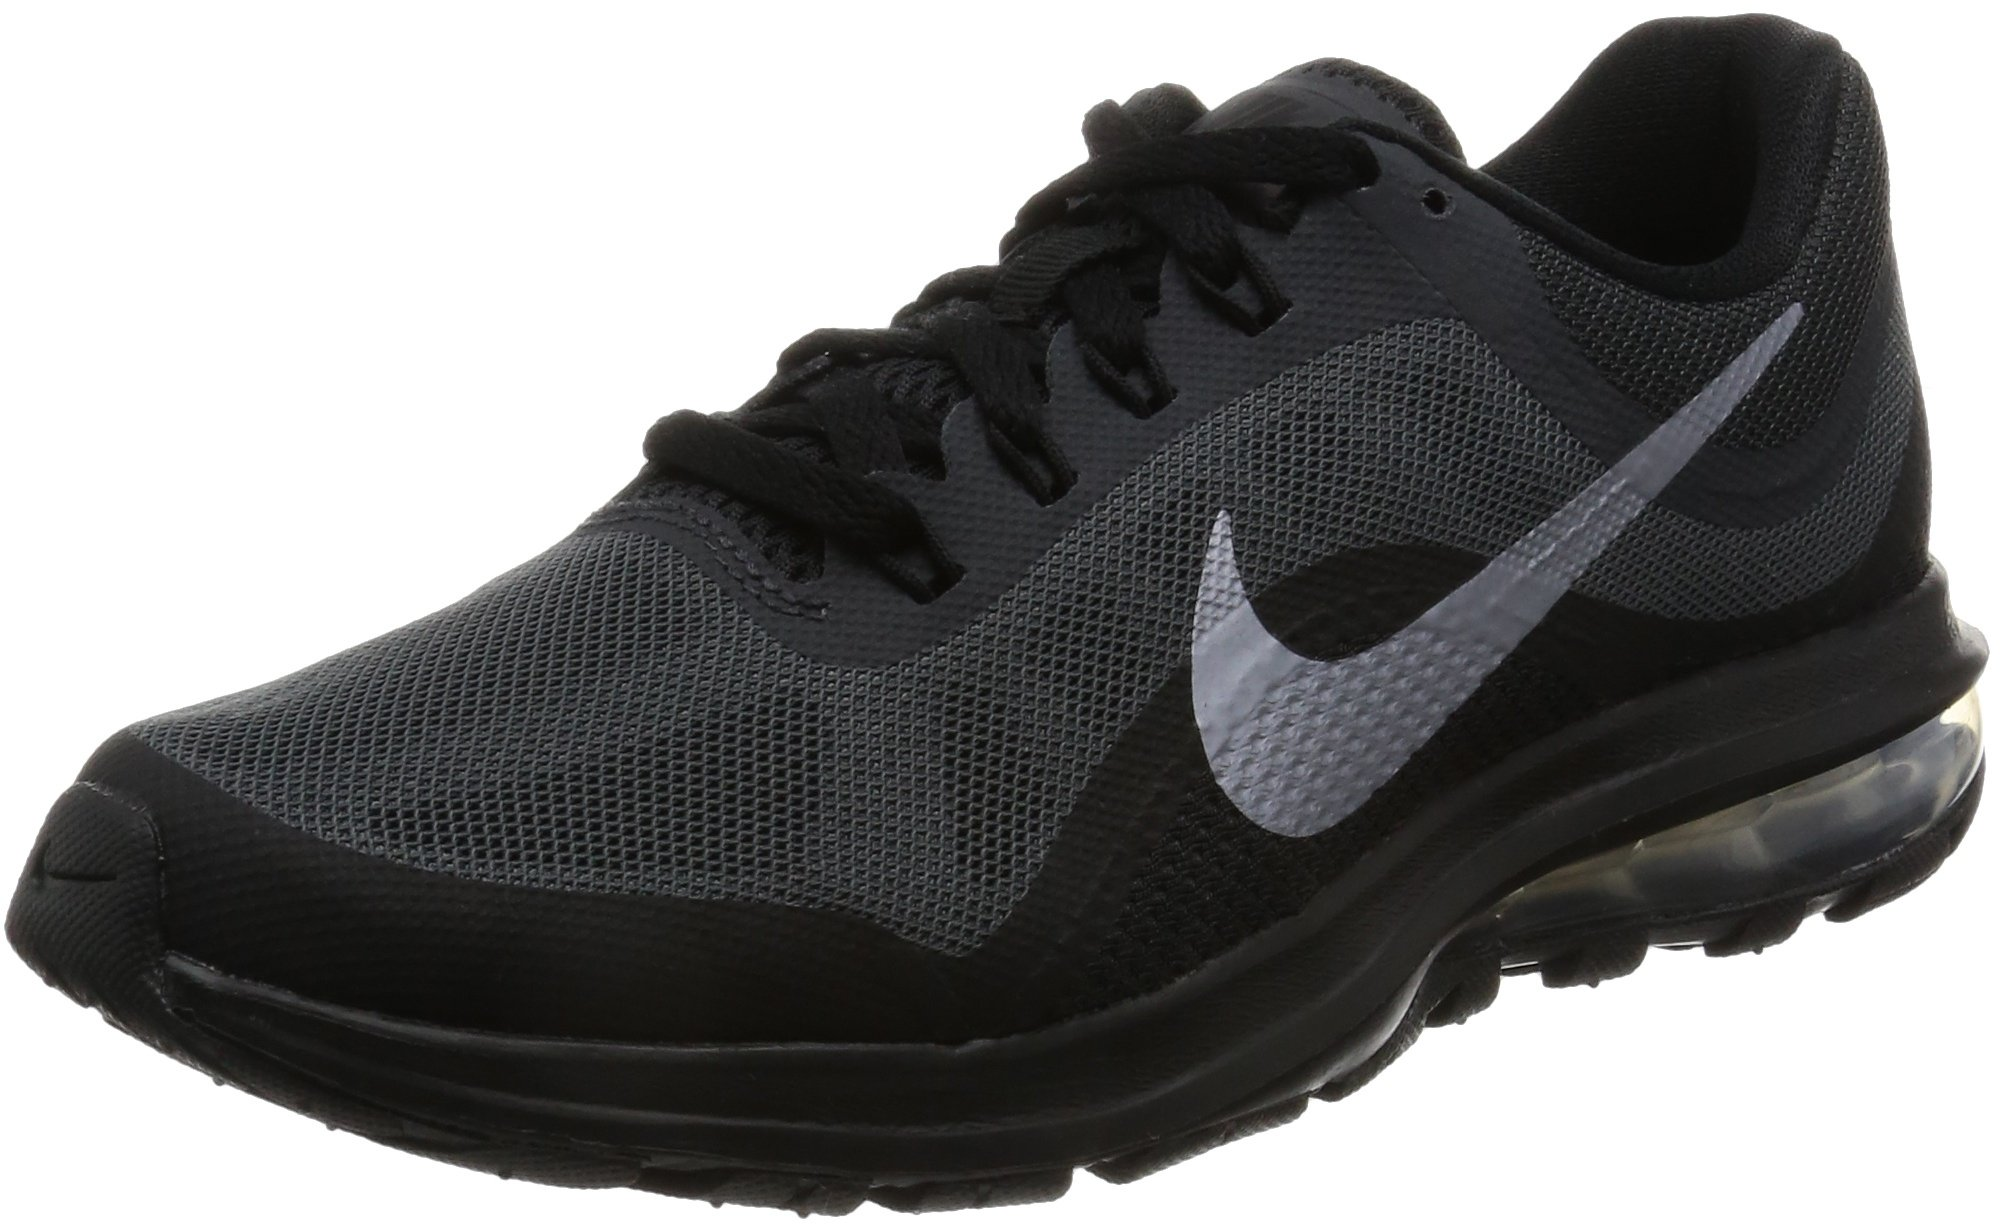 Nike Nike Women Air Max Dynasty 2 Running Shoe Anthracite Black, US Women's from Walmart | People